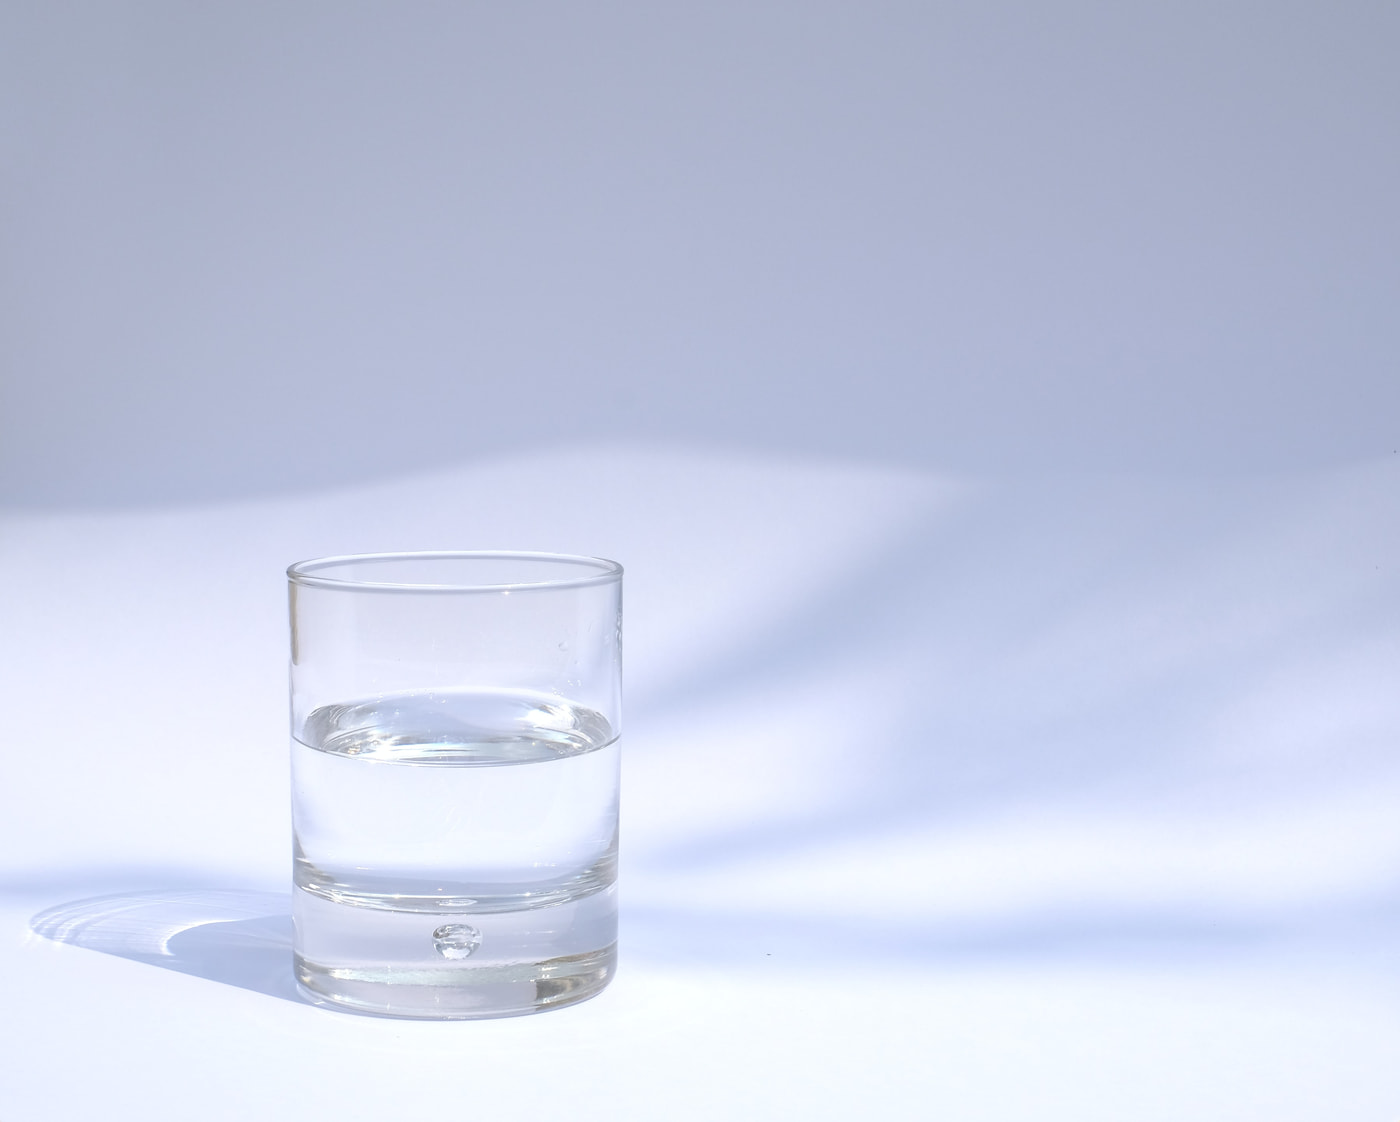 staying hydrated by drinking water